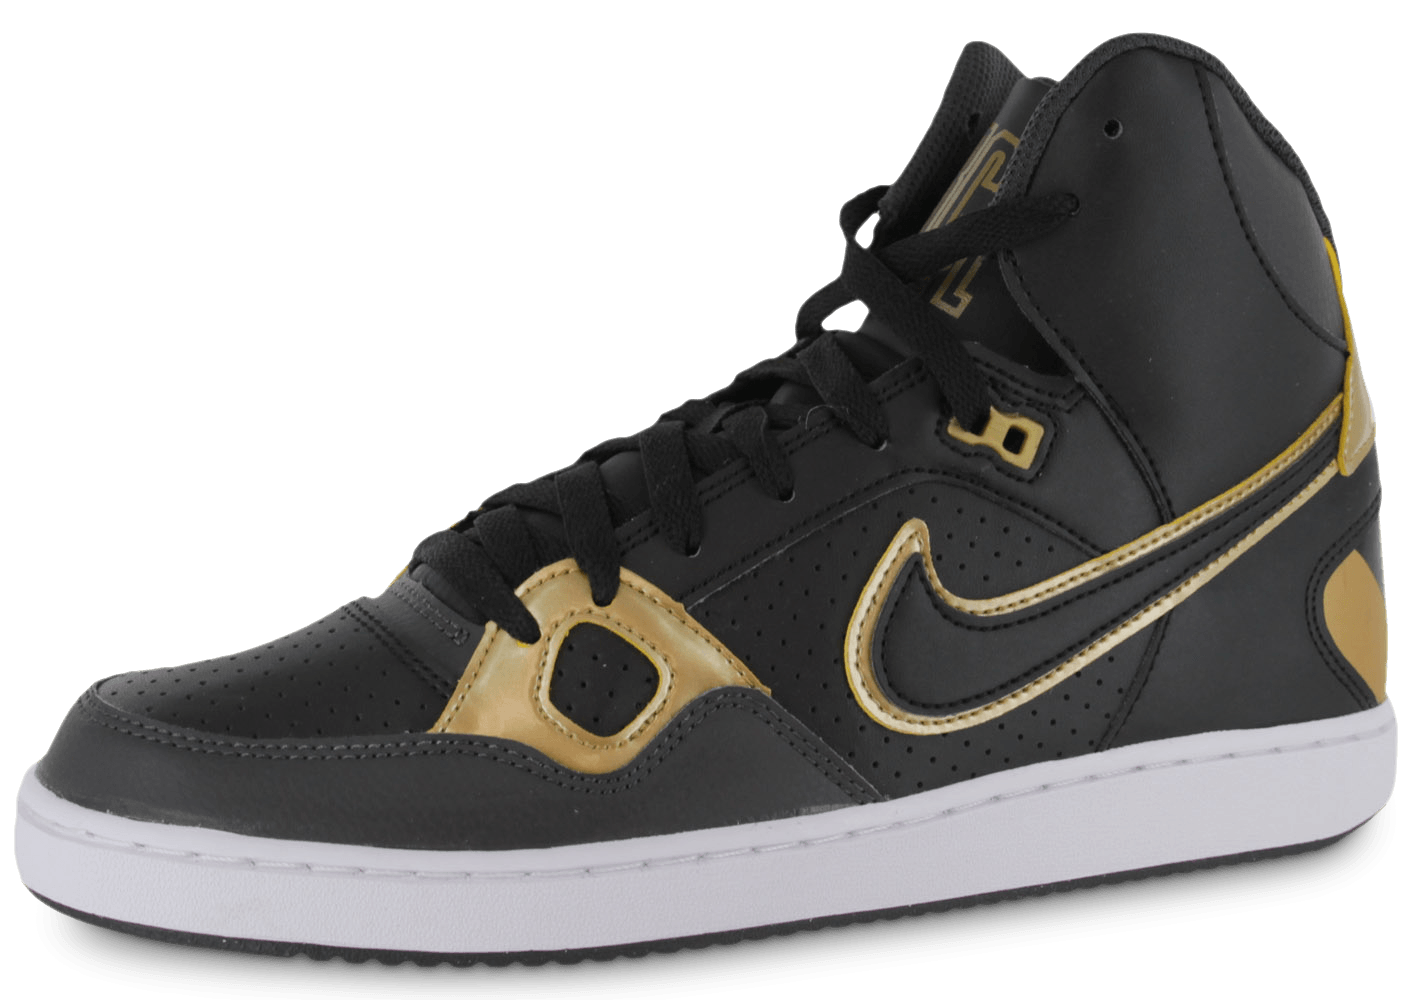 nike baskets wmns son of force mid chaussures femme tom cruise petite amie. Black Bedroom Furniture Sets. Home Design Ideas